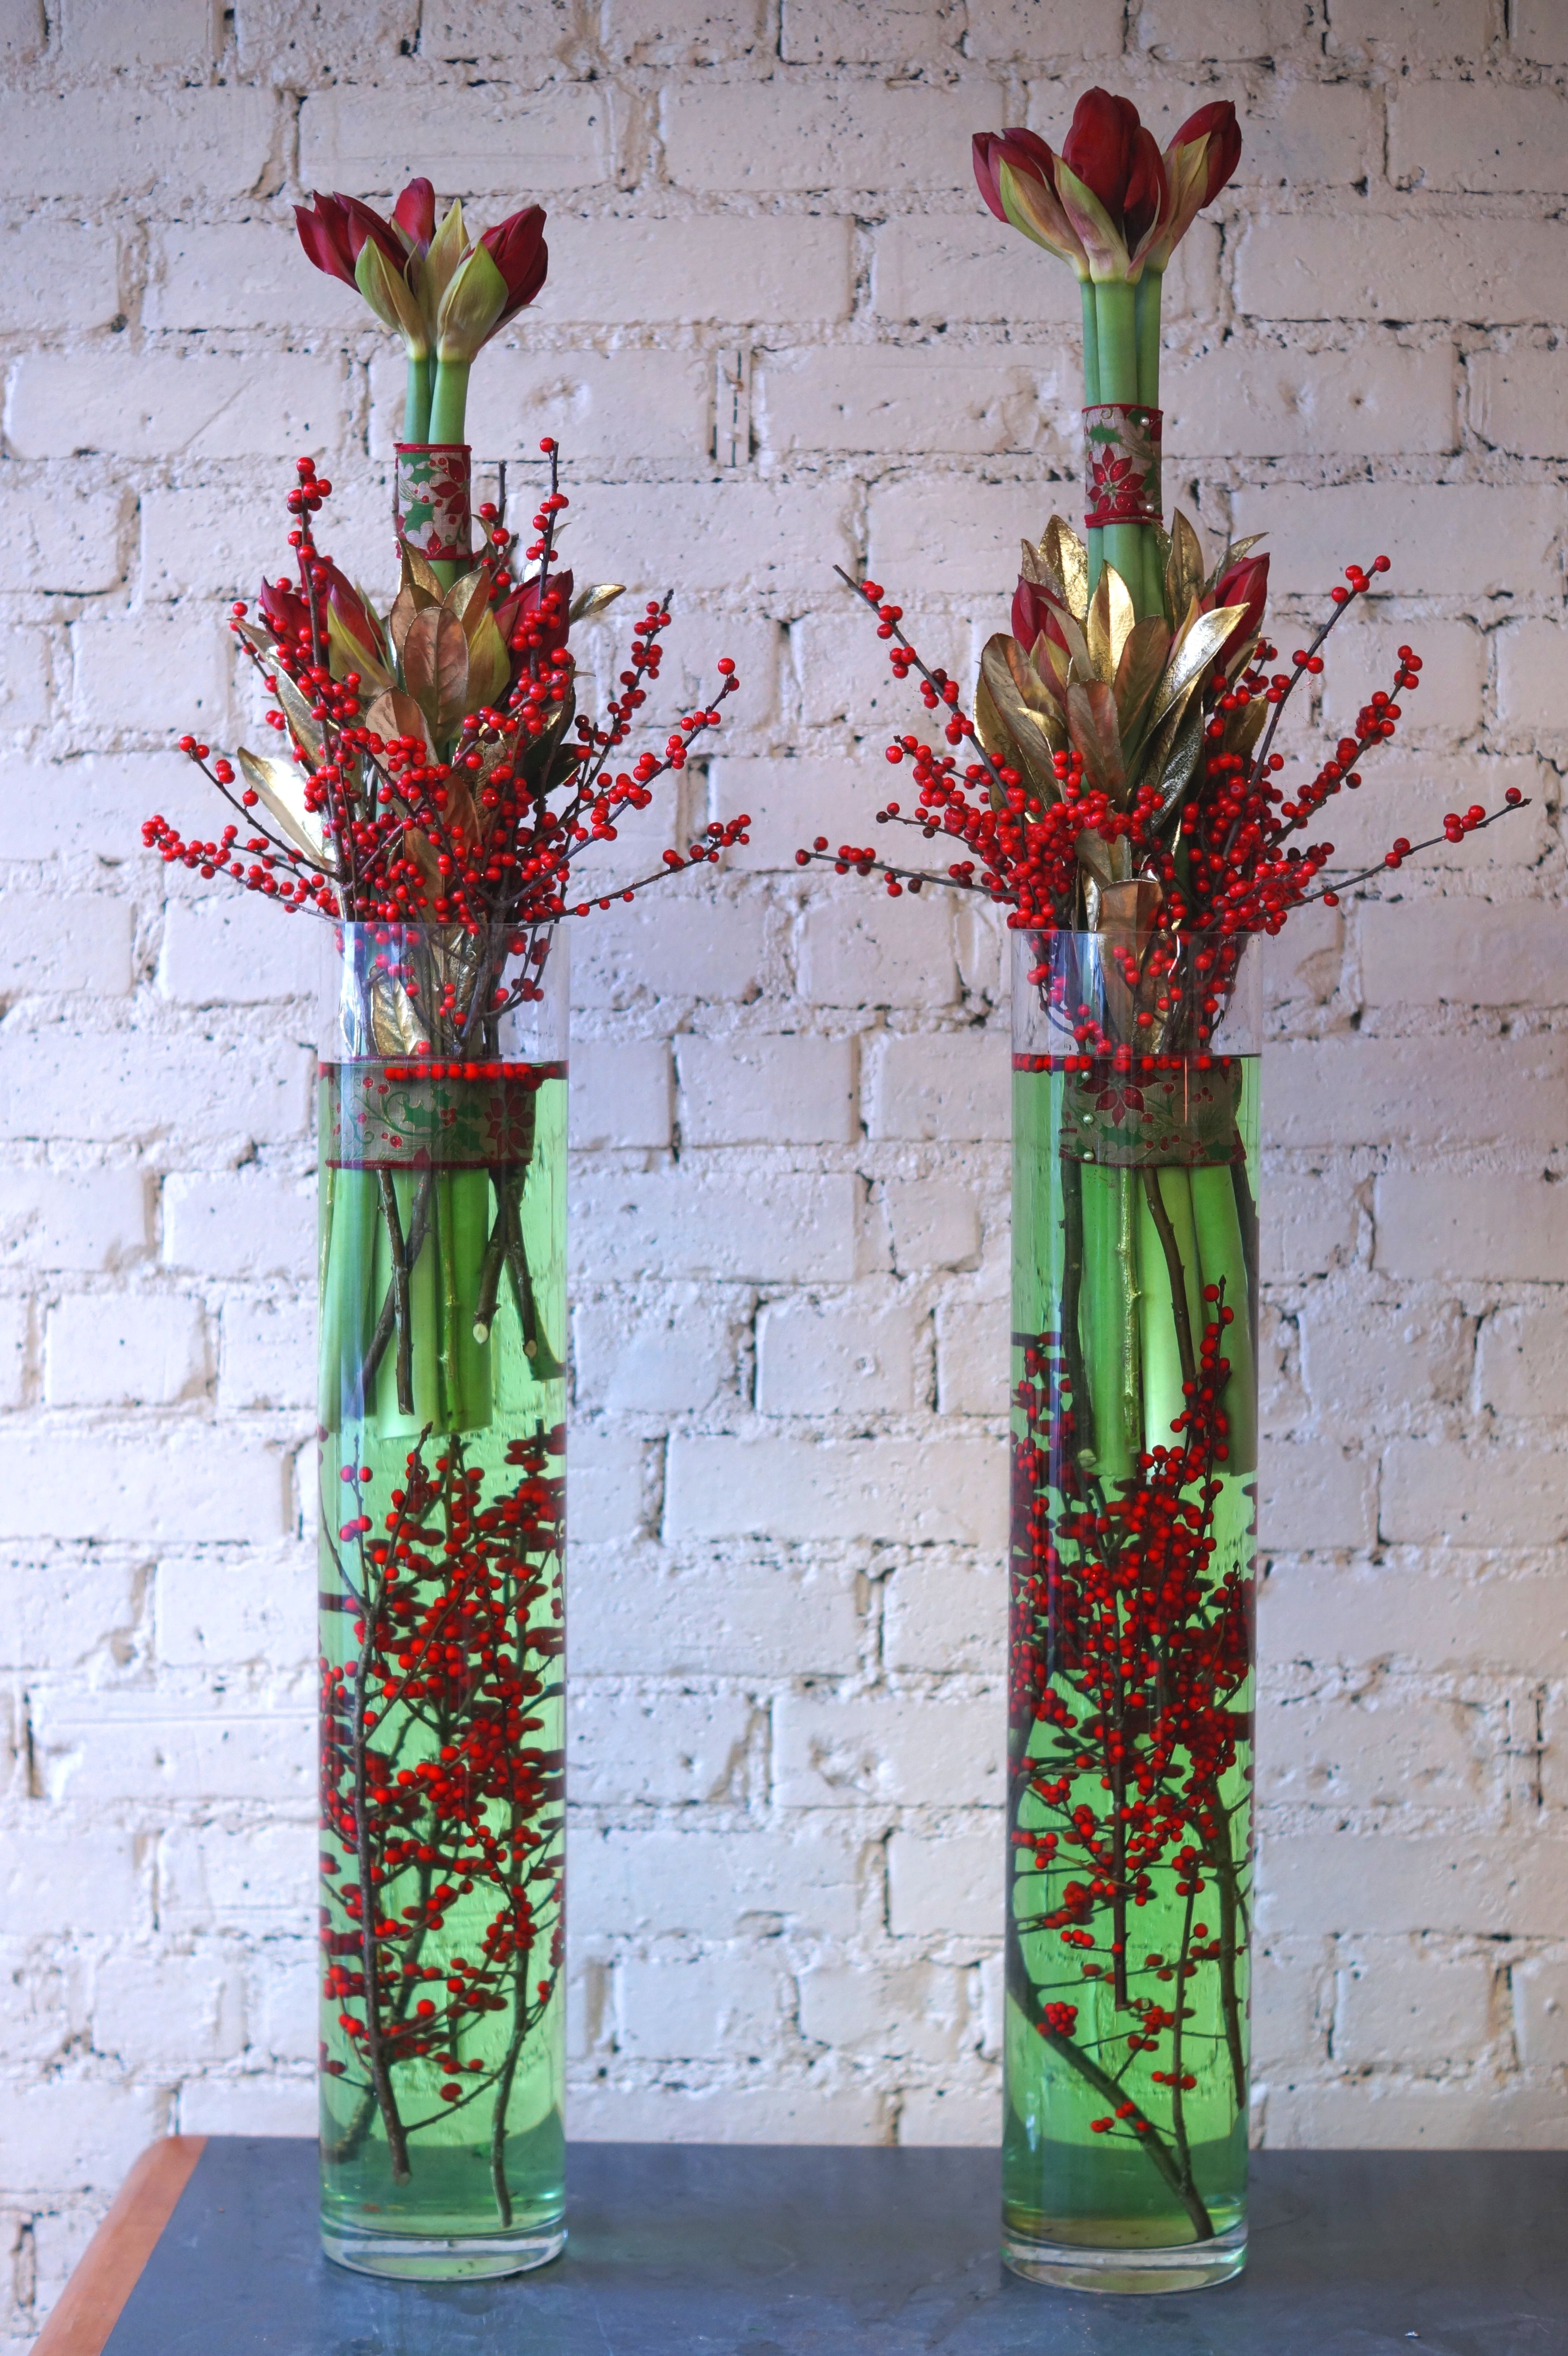 Festive modern arrangements using red amaryllis red ilex berries festive modern arrangements using red amaryllis red ilex berries and gold laurel arranged in tall cylinder vases with dyed green water to add an extra bit reviewsmspy